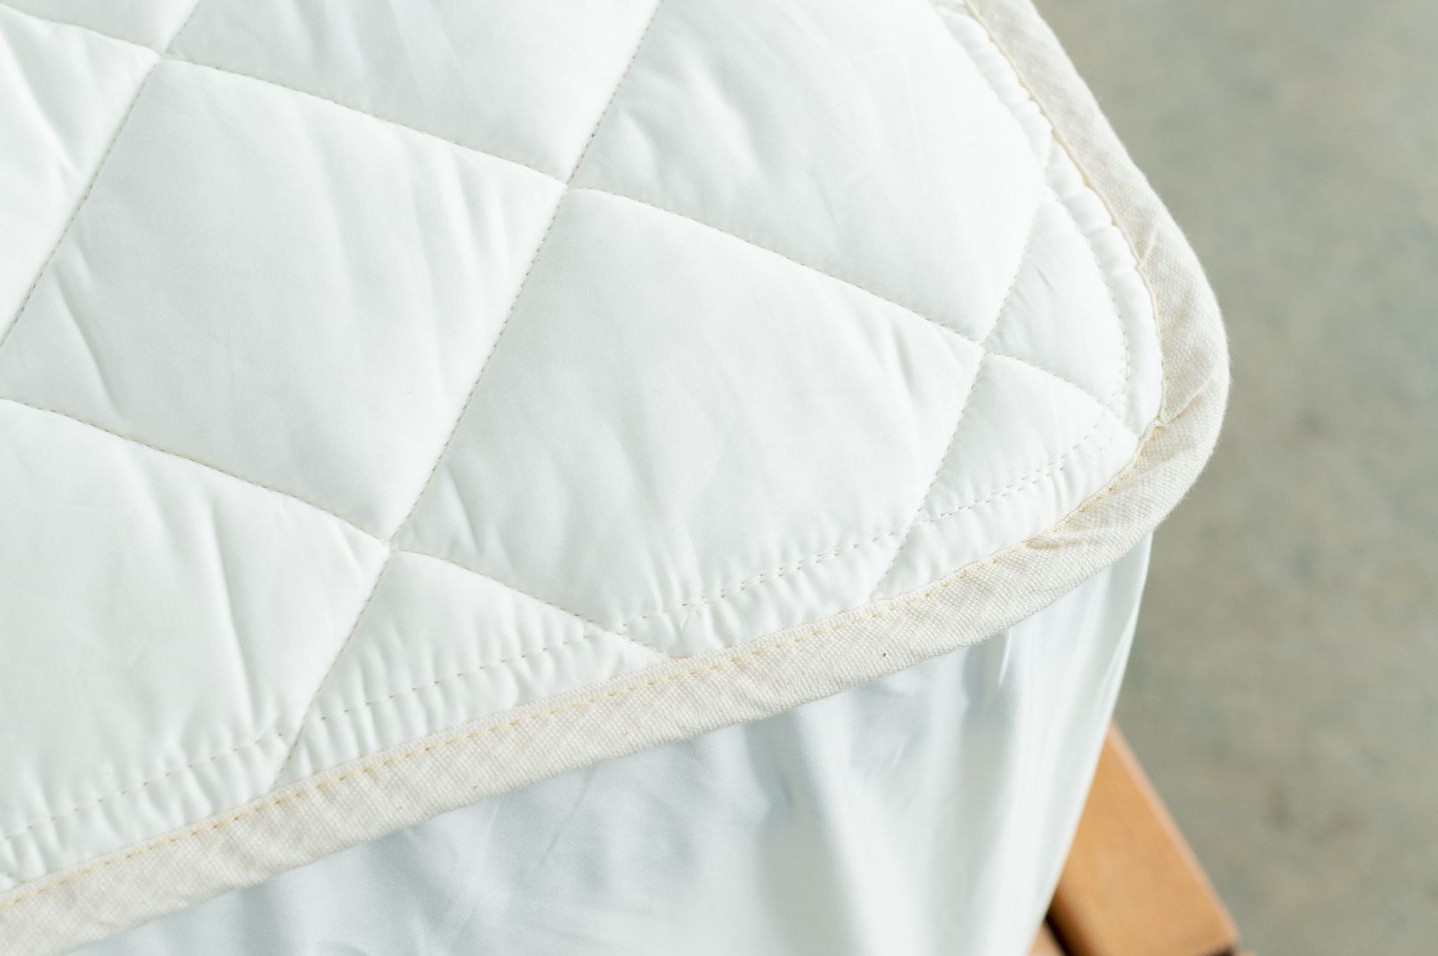 invest in a quality mattress protector